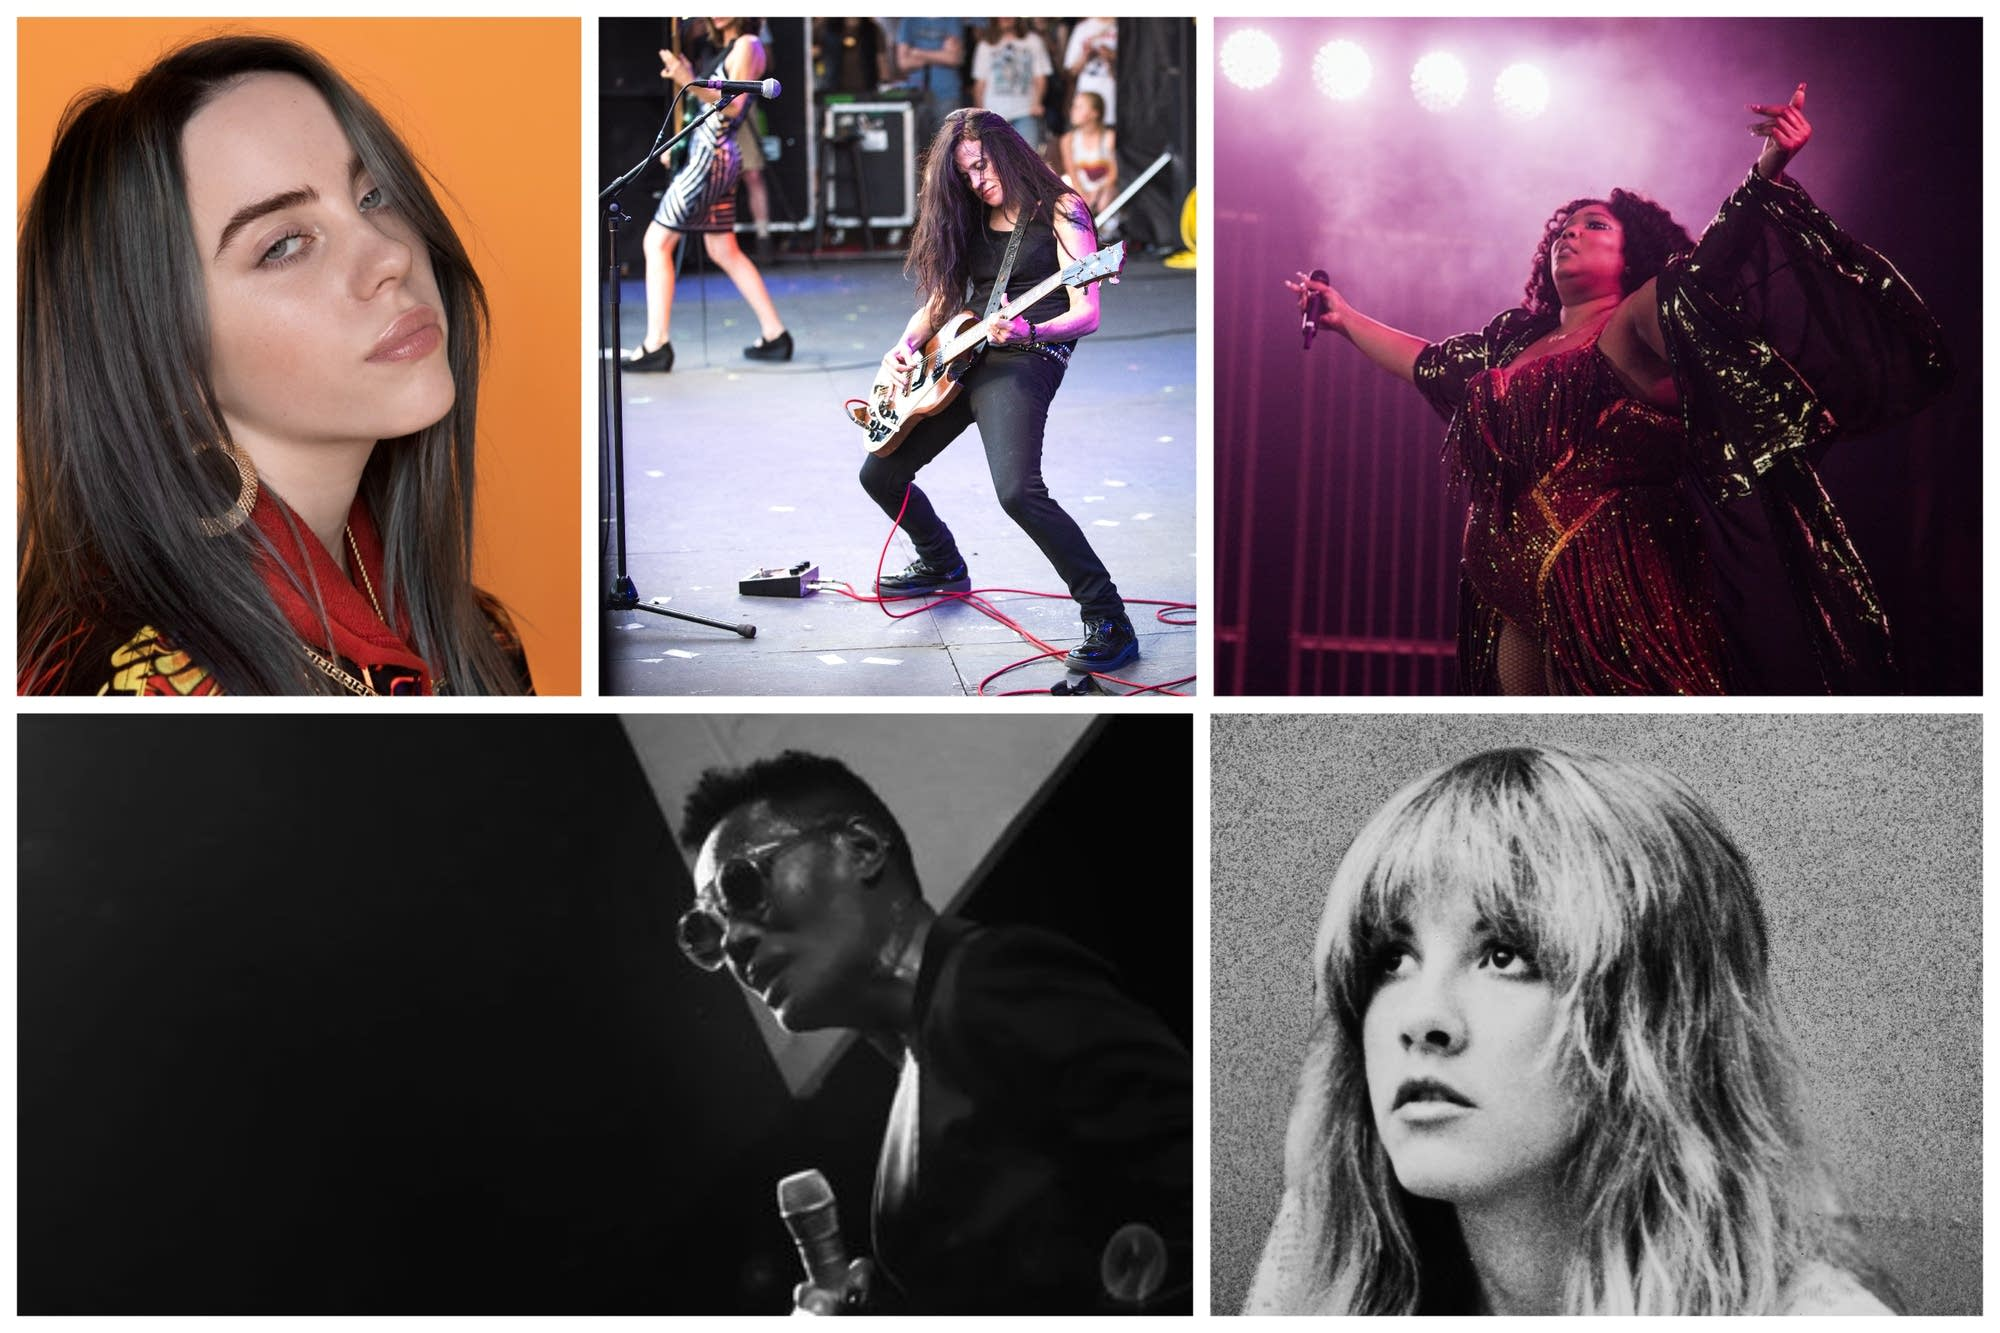 A collage of remarkable women musicians.